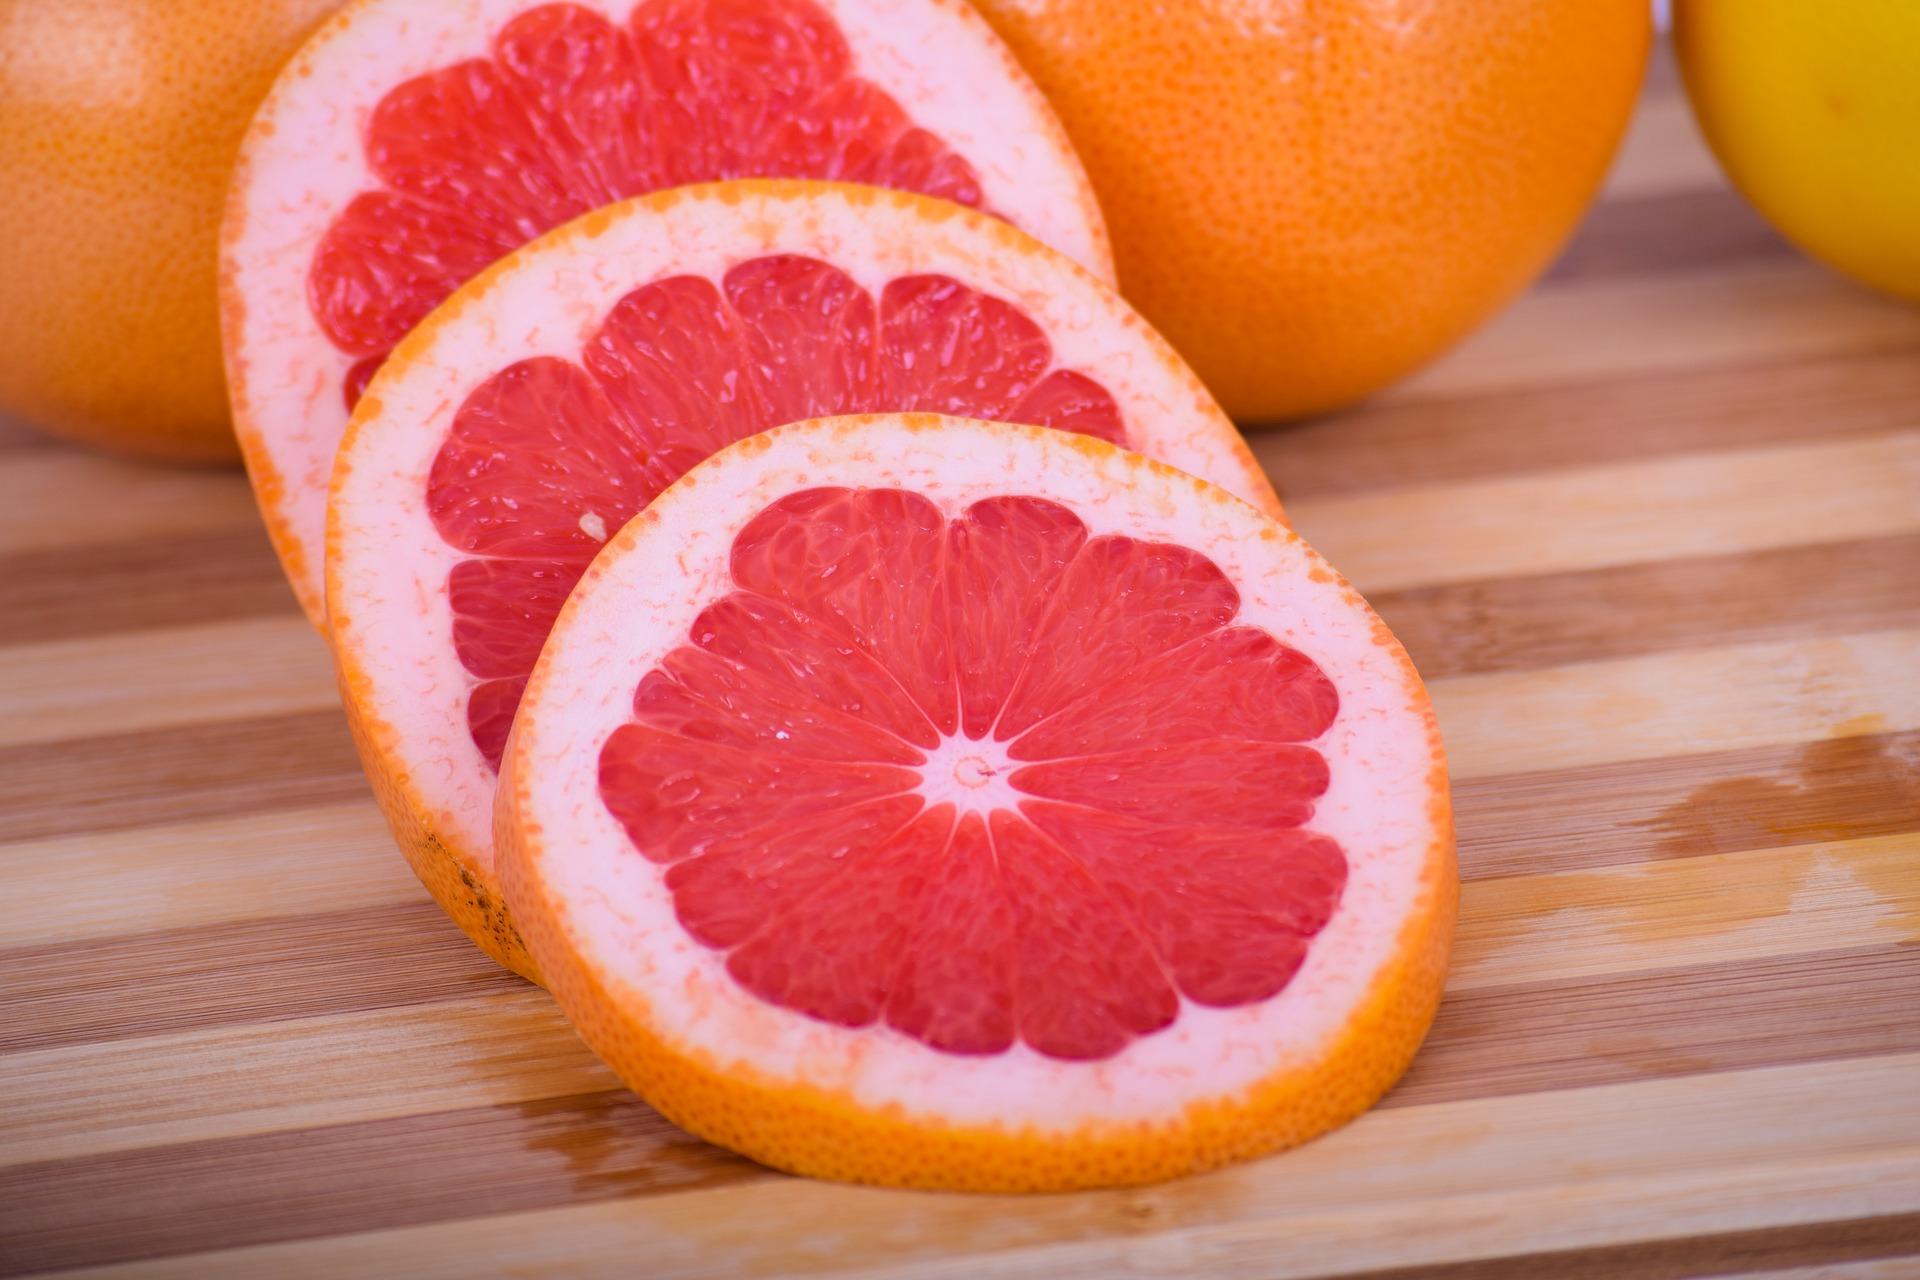 How many calories are in the grapefruit